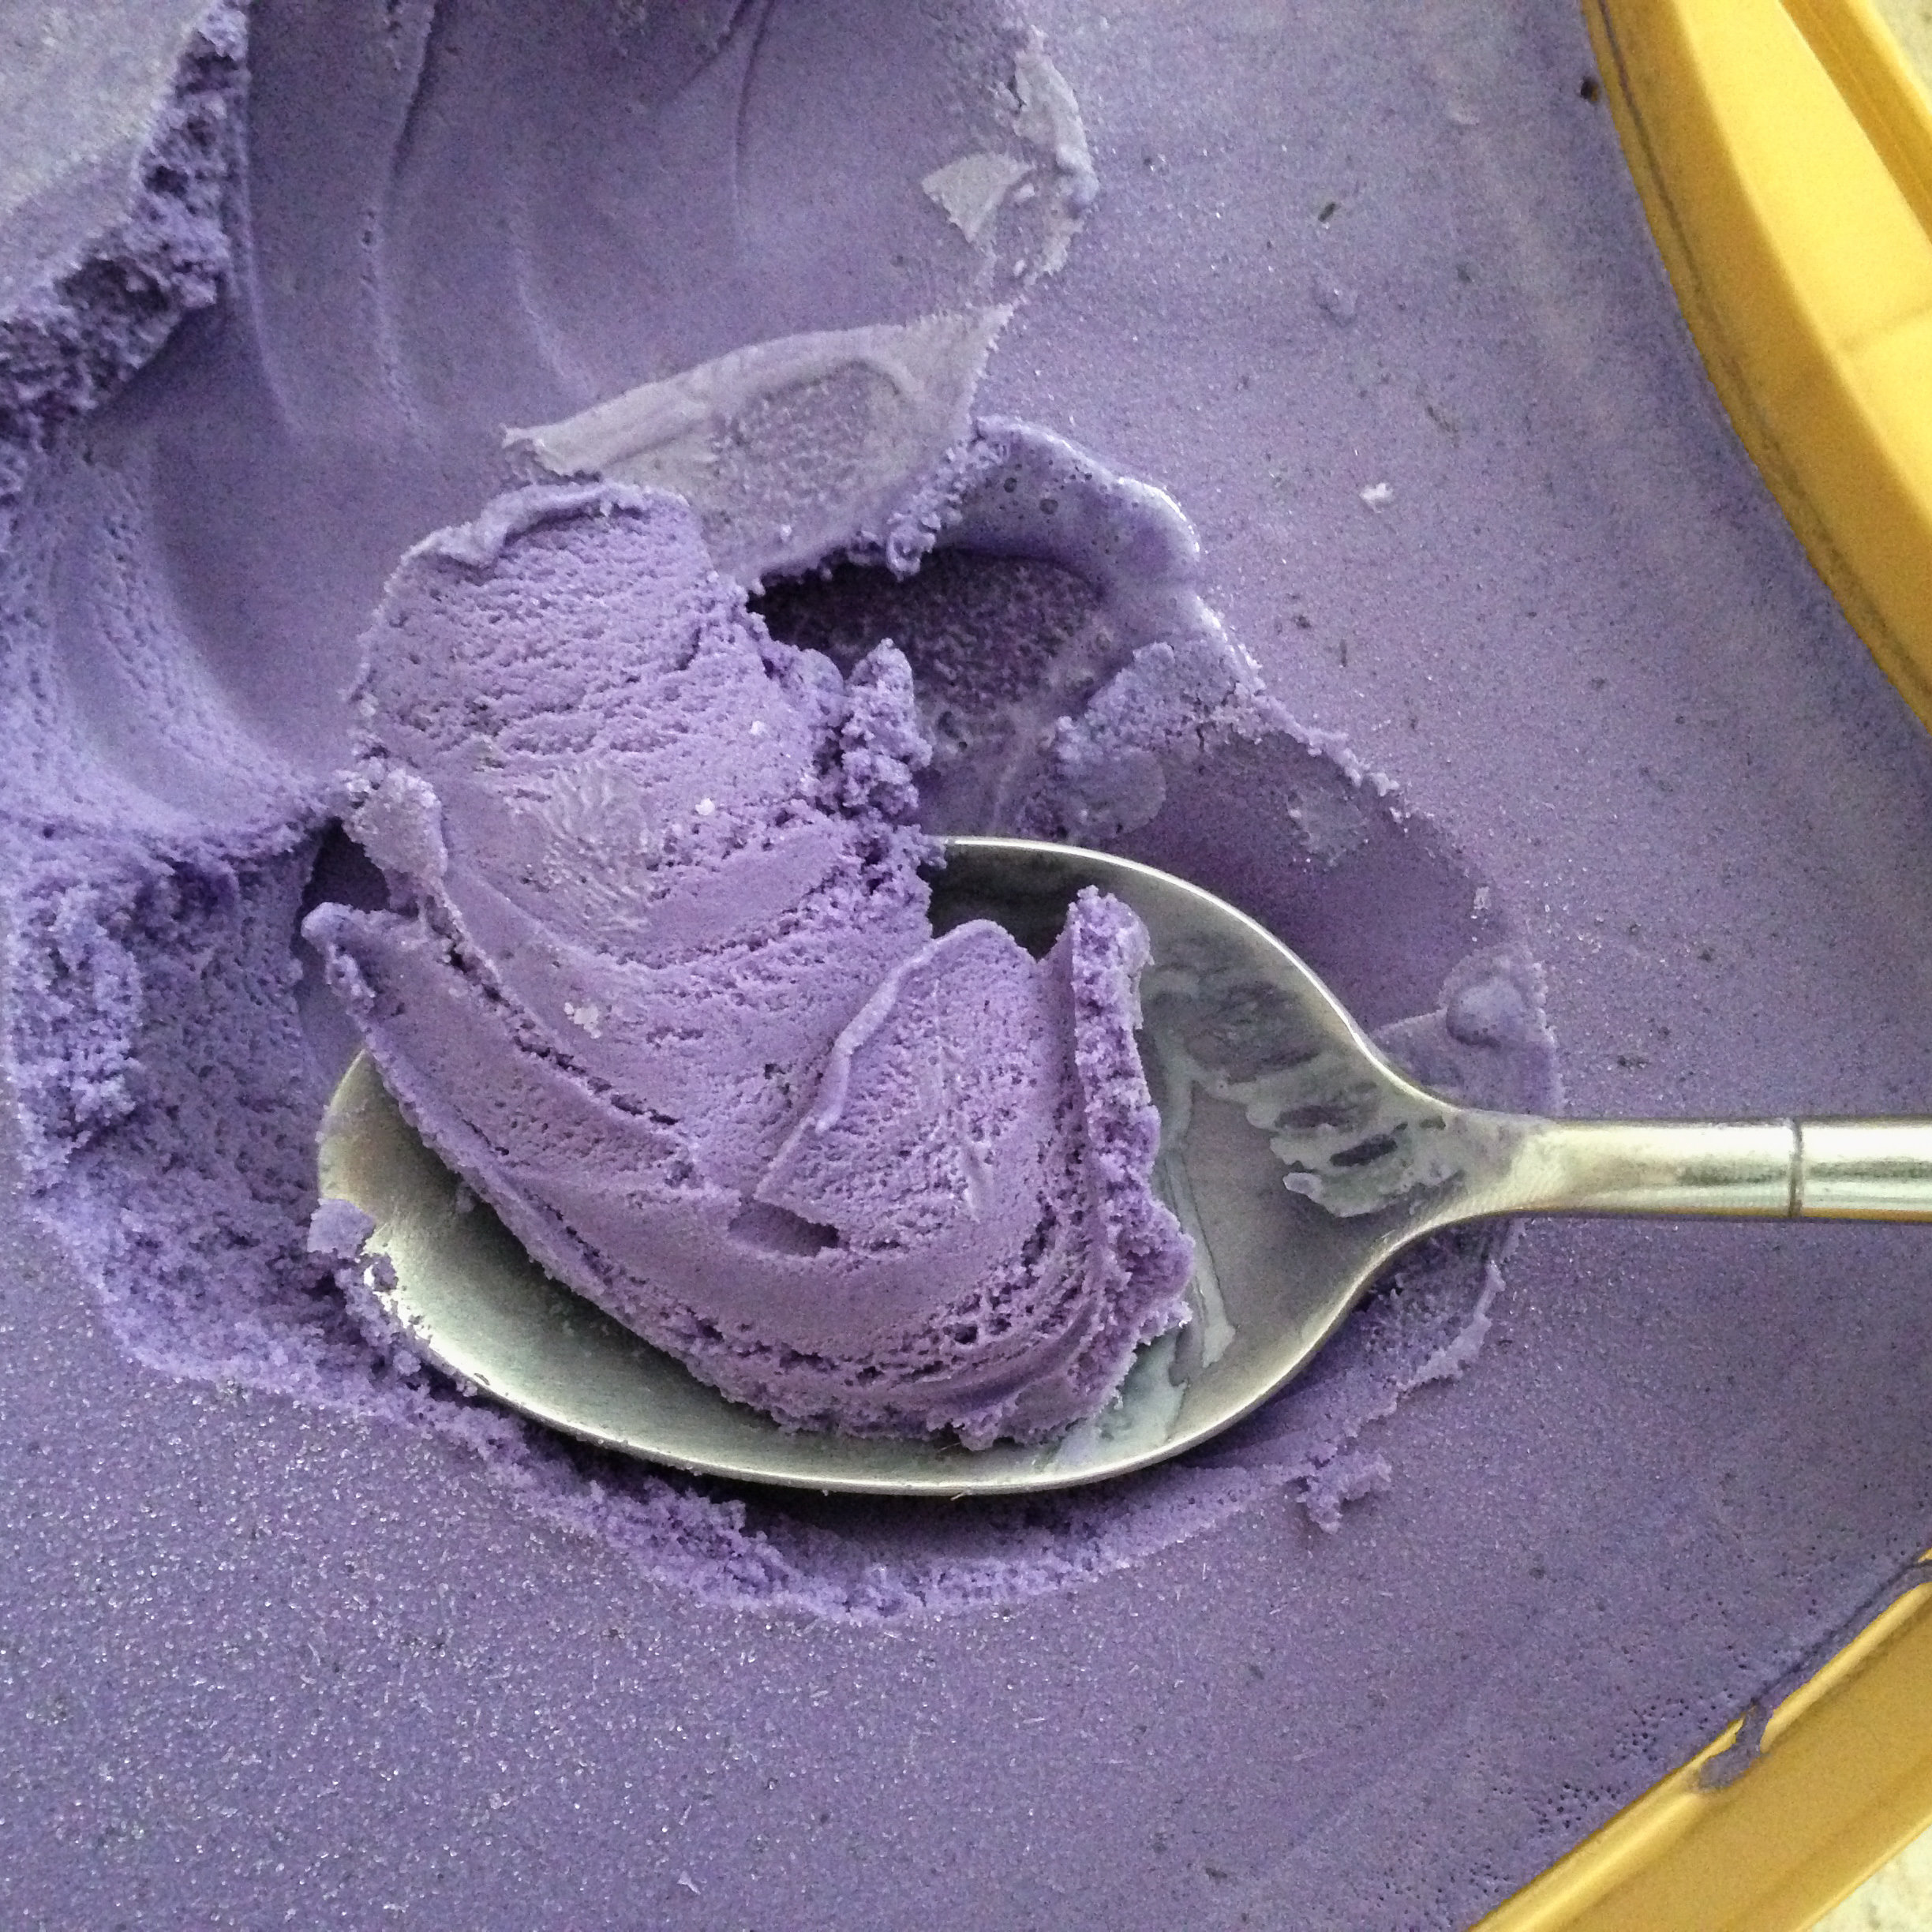 Filipino ube ice cream is made with purple yam.